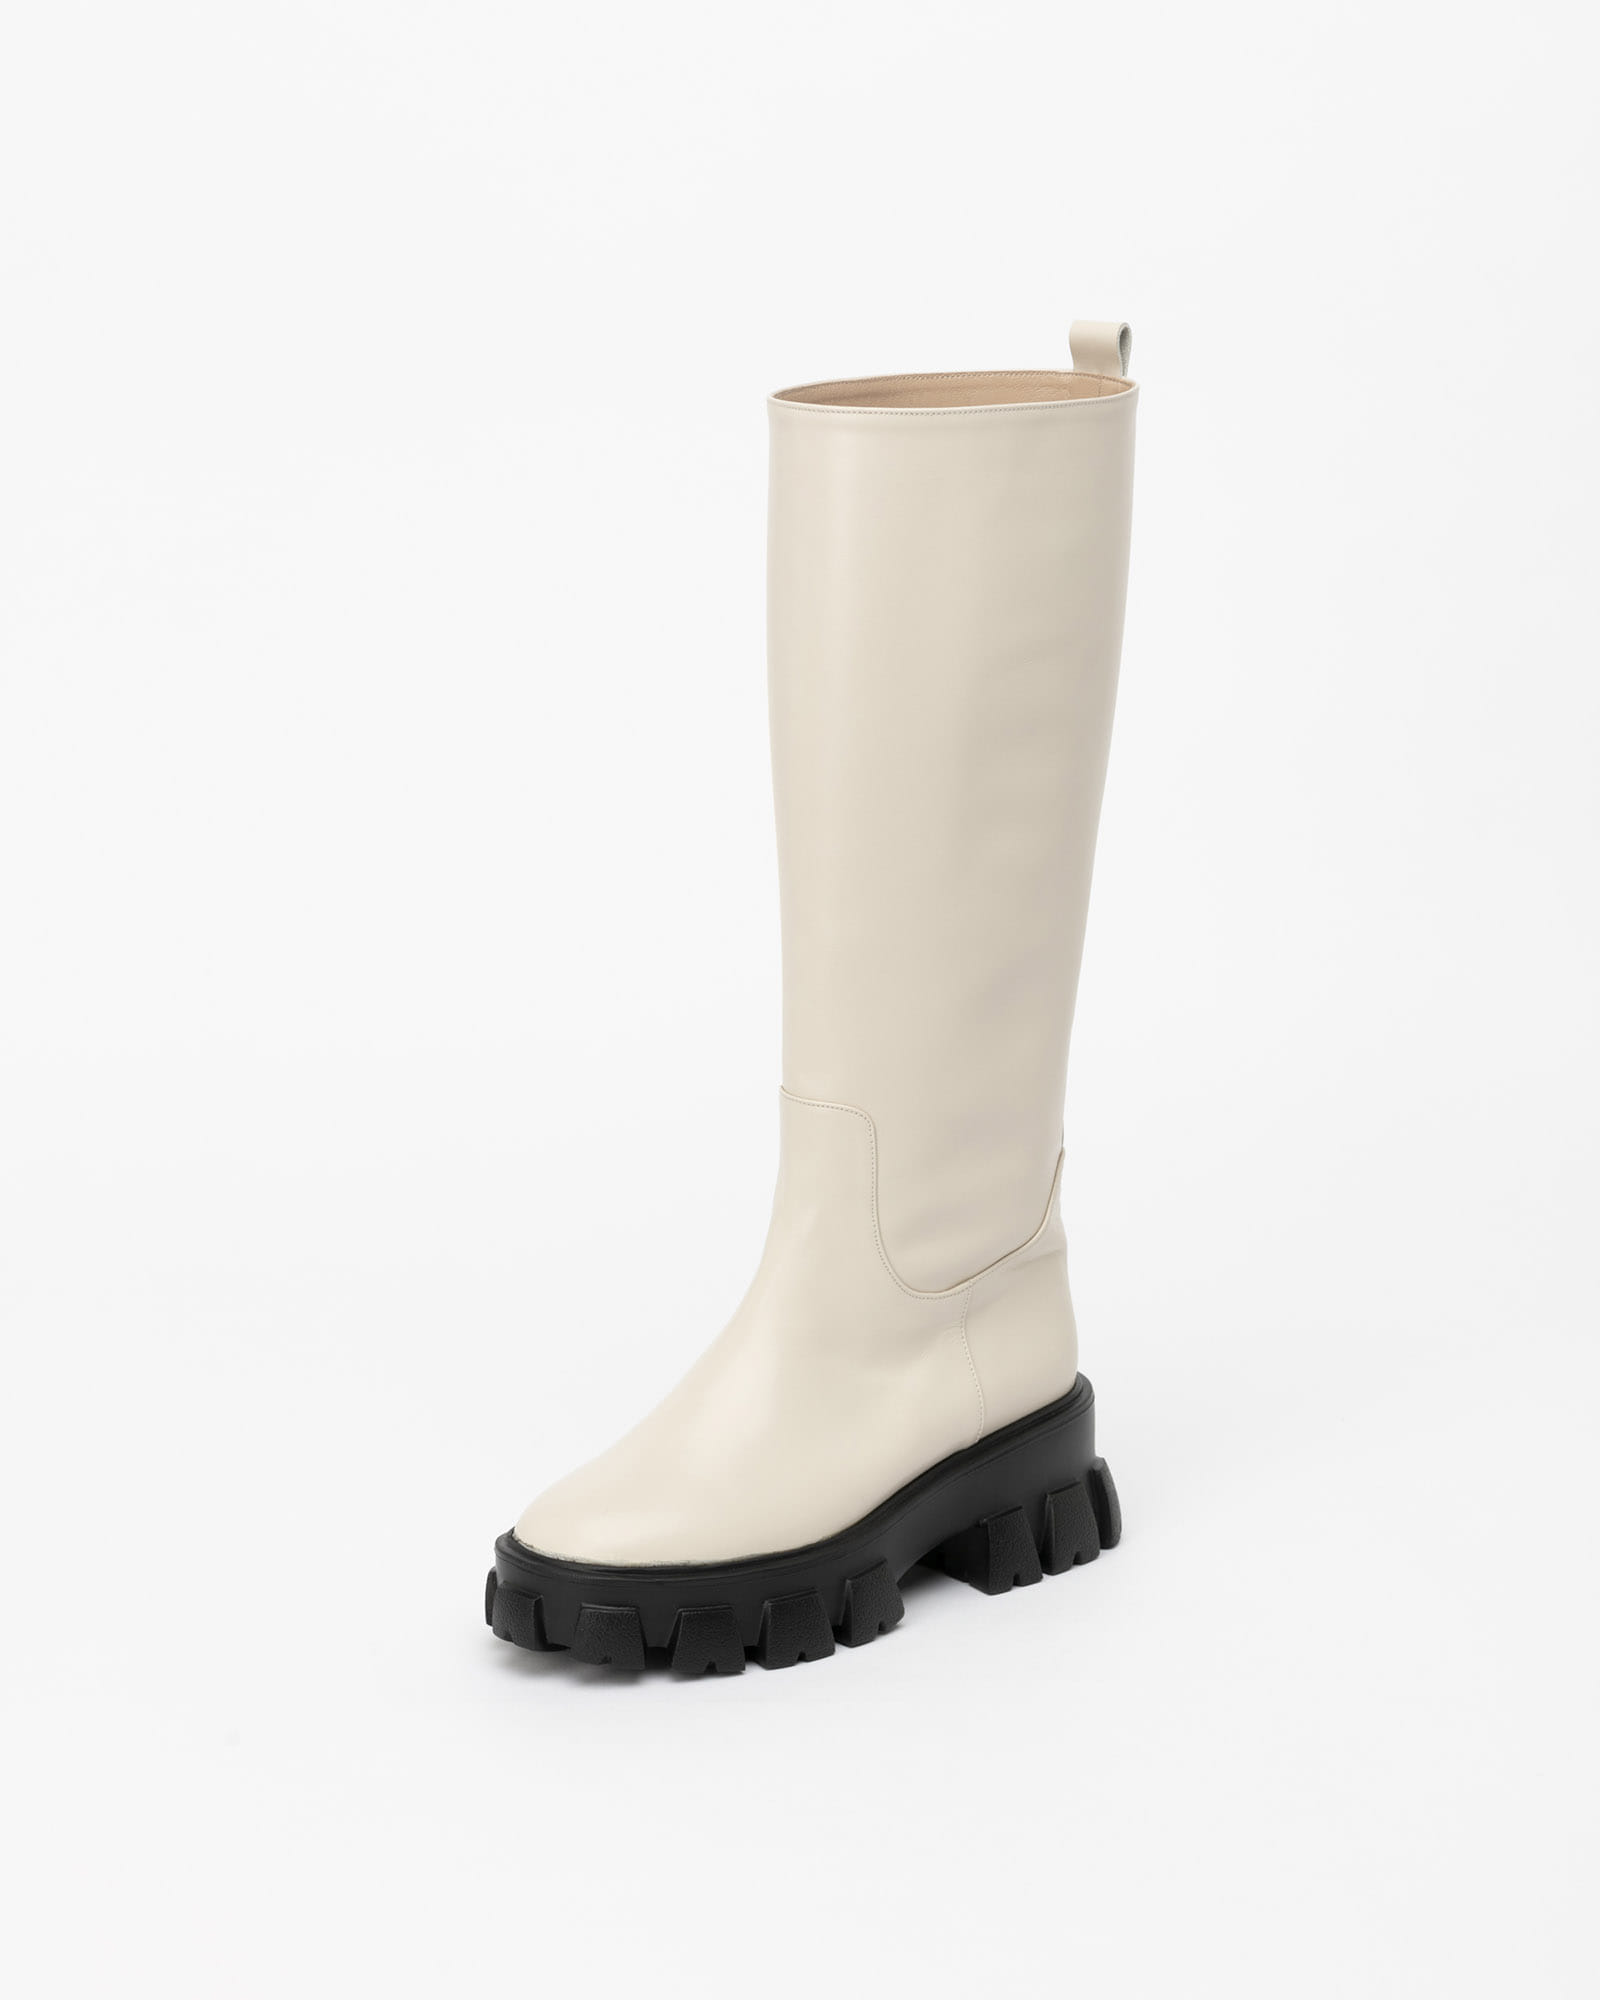 Dilon Lug-sole Boots in Ivory